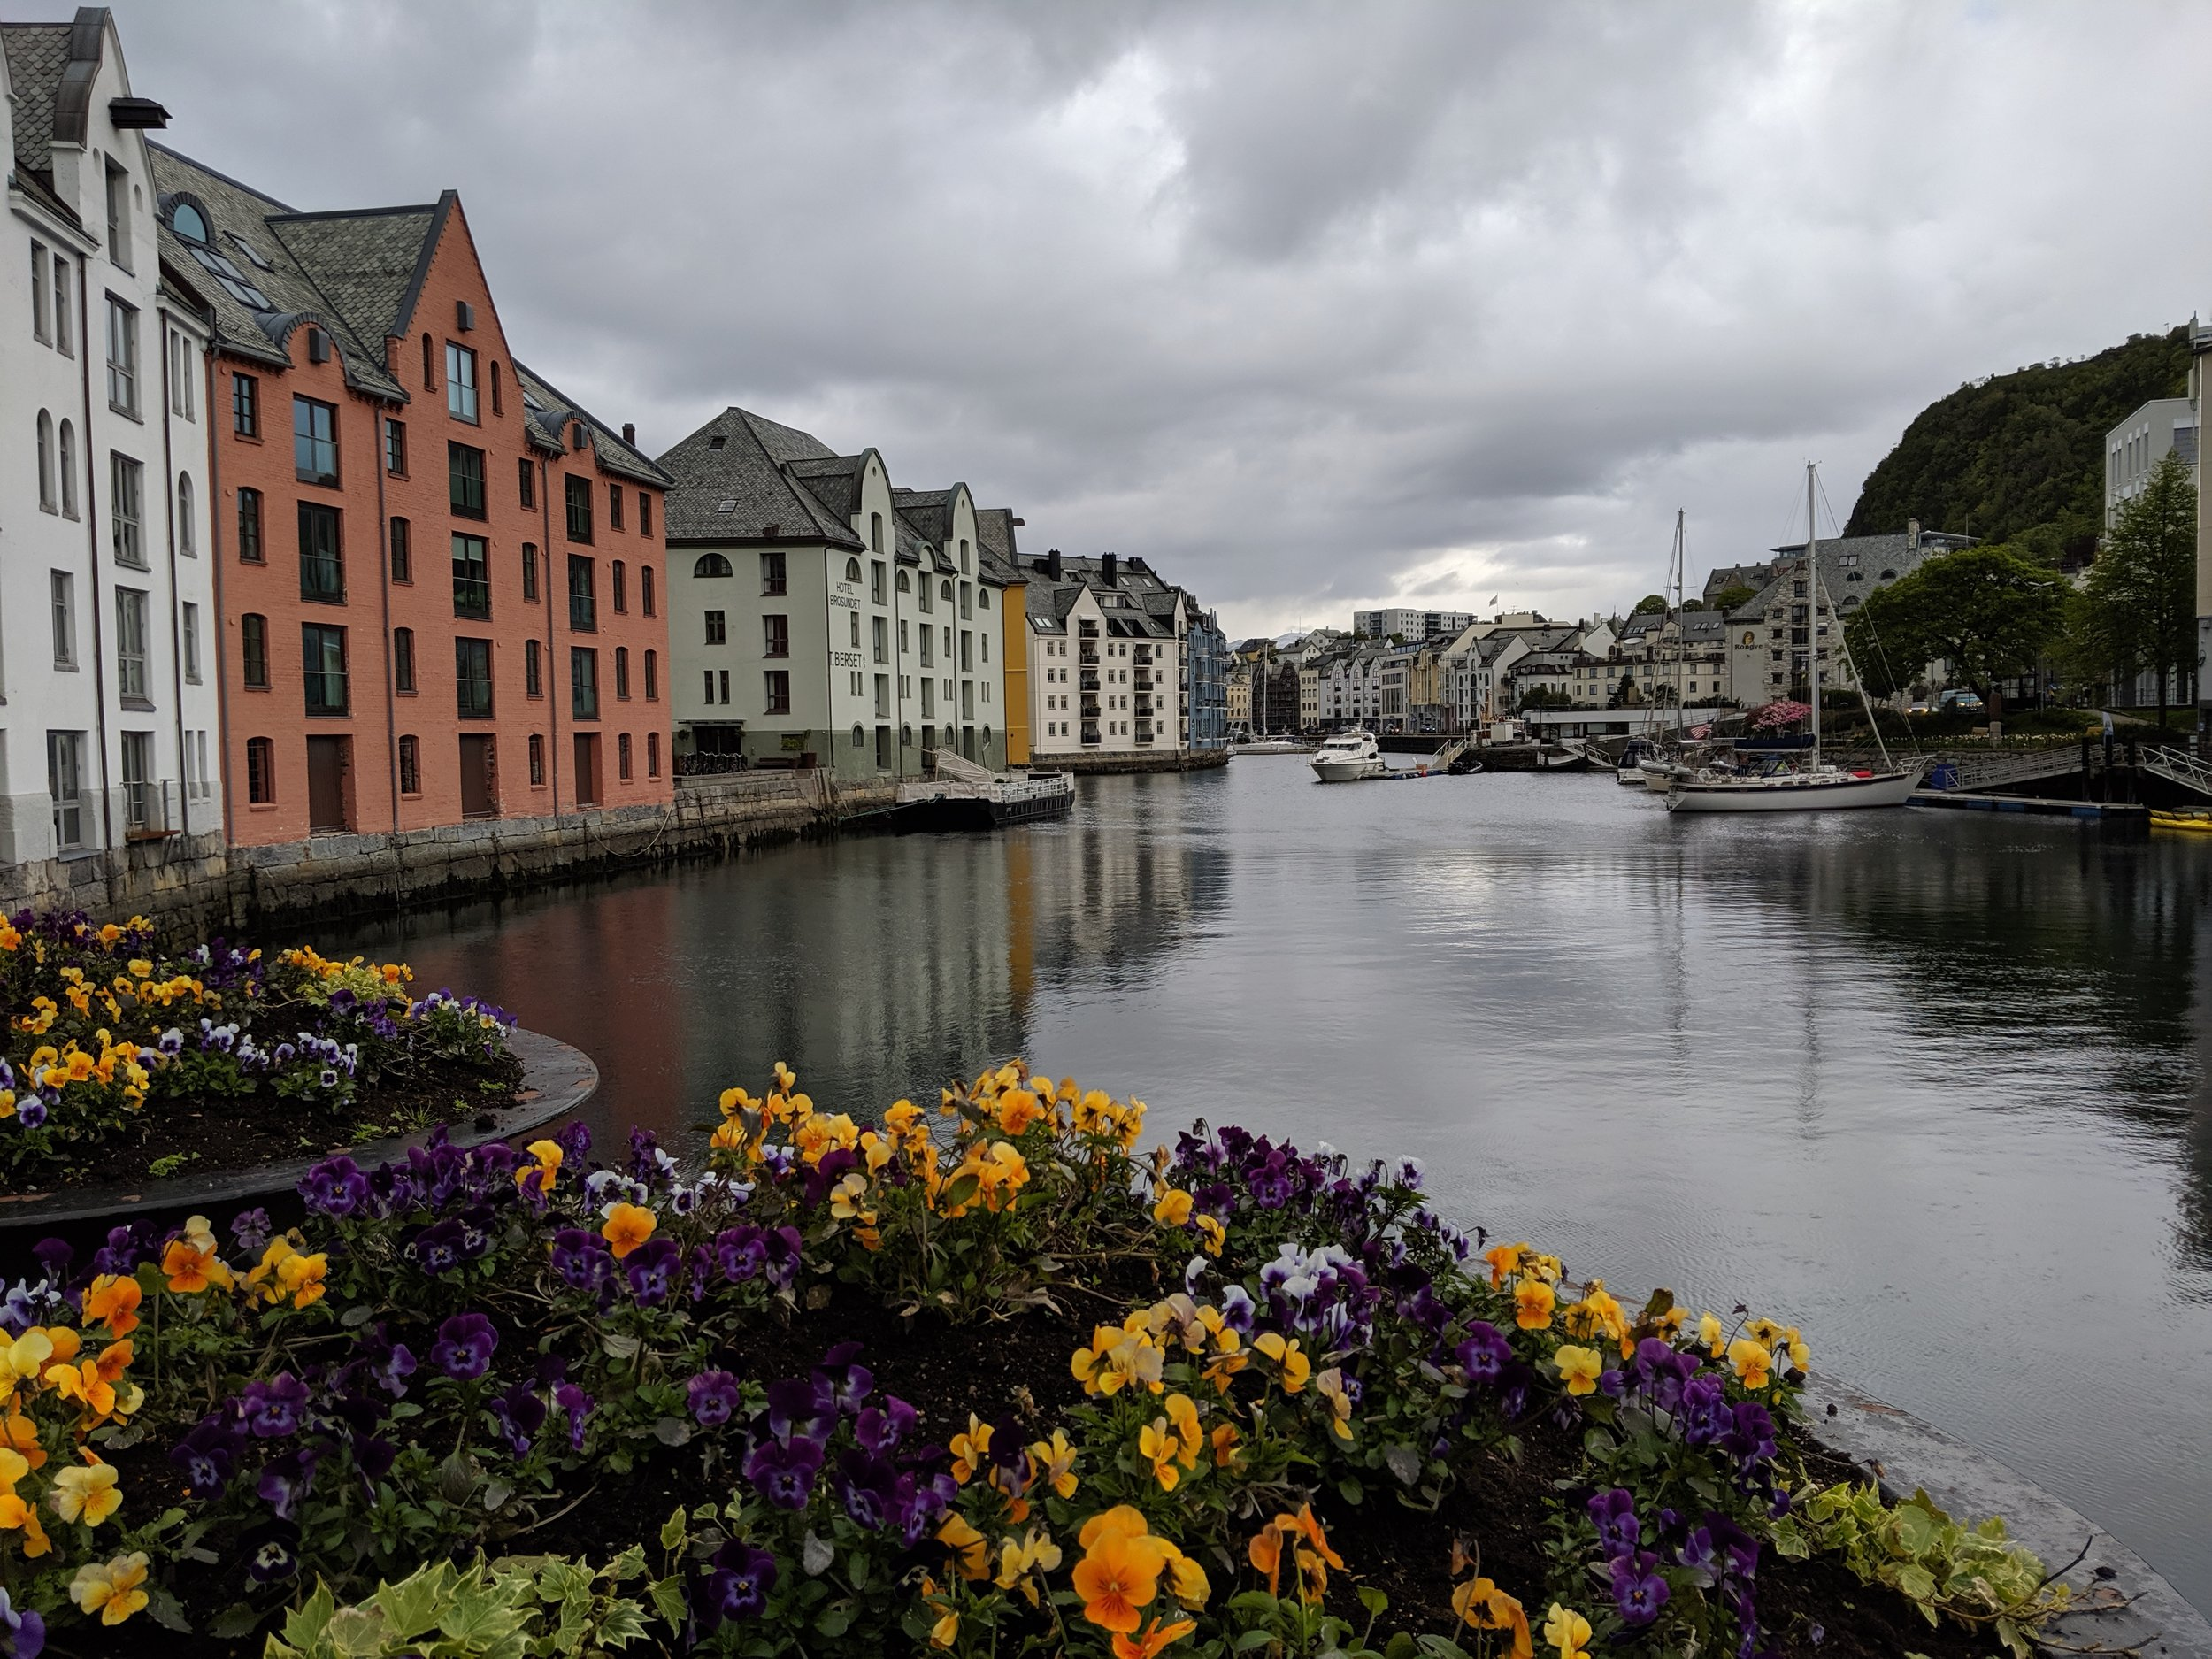 An inlet in Alesund where the houses were built right up to the water's edge.